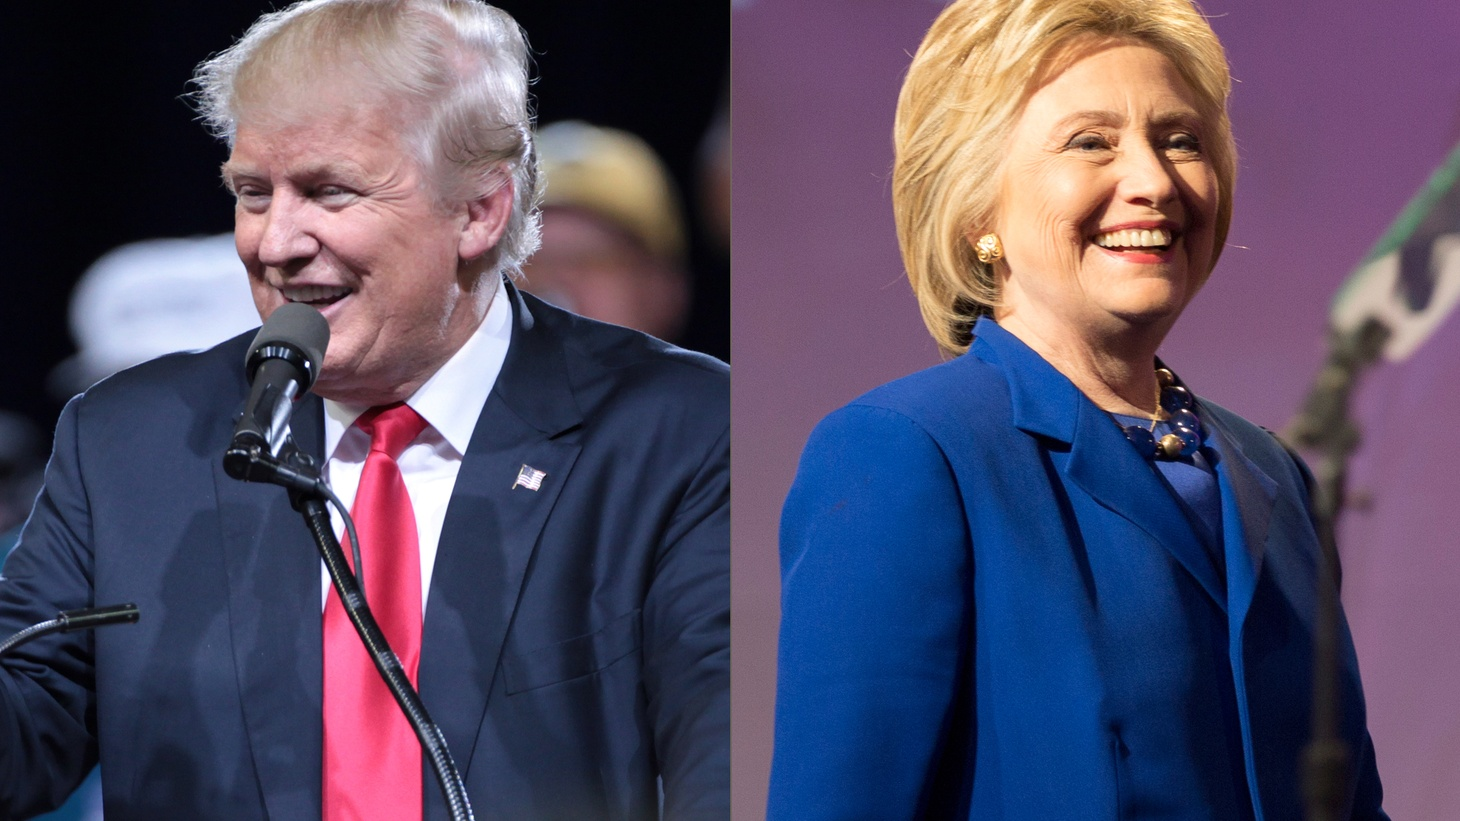 Hillary Clinton is leading Donald Trump in the polls and crushing him in fundraising. But the Donald is banking on a 'Brexit Bounce' that capitalizes on voters' globalization fears. This week he made his first swing-state tour of the general election -- lashing out at trade deals. We'll examine the general election strategies emerging for both candidates -- including who's on the VP short lists.